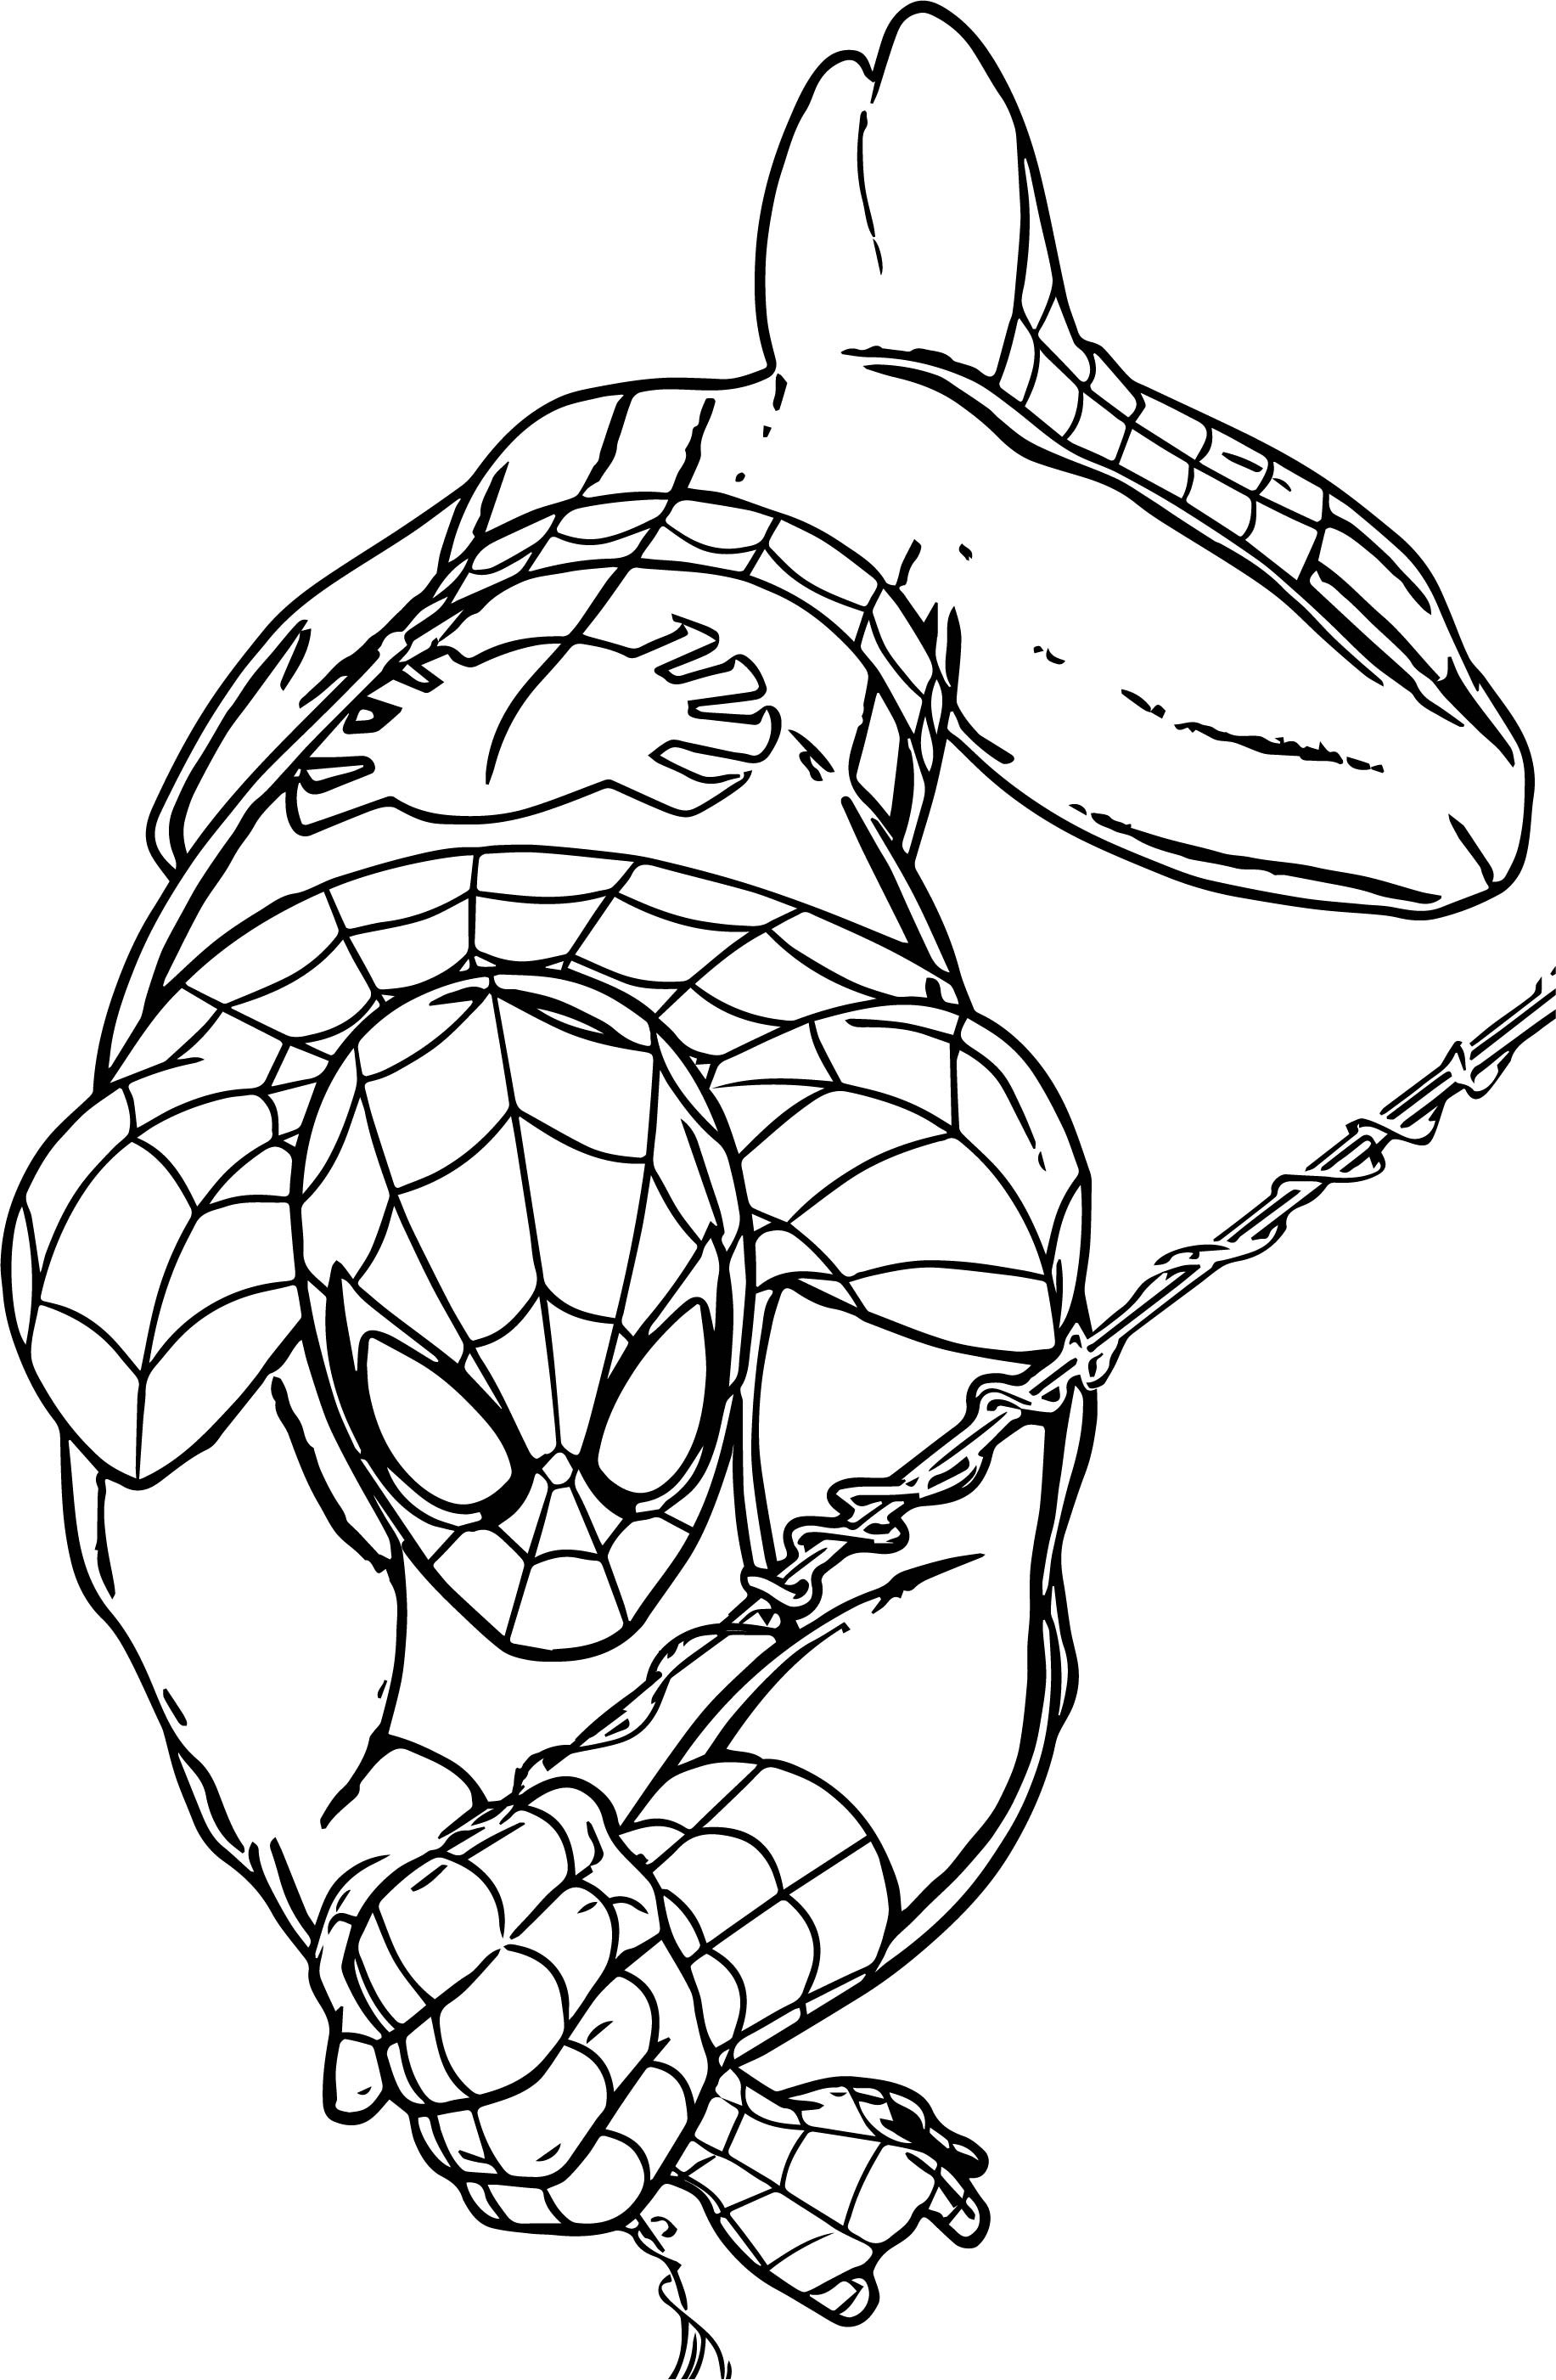 Marvel universe ultimate spider man spider man coloring for Marvel coloring pages